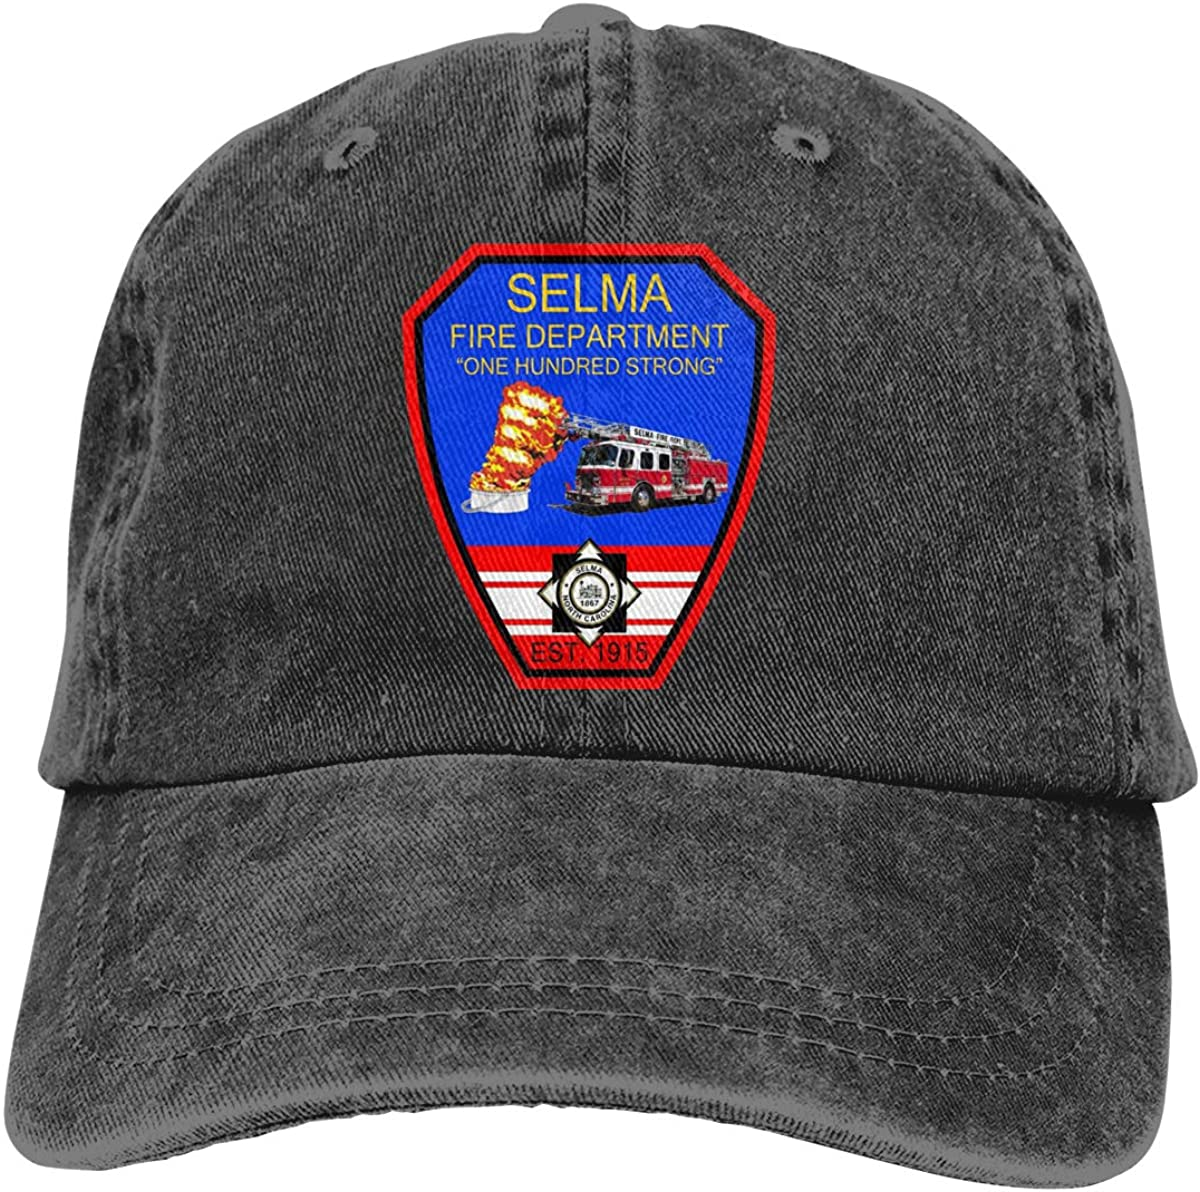 GAOFEIhat Fire Prevention /& Inspections Town of Selma NC Unisex Adult Denim Hats Cowboy Hat Dad Hat Driver Cap